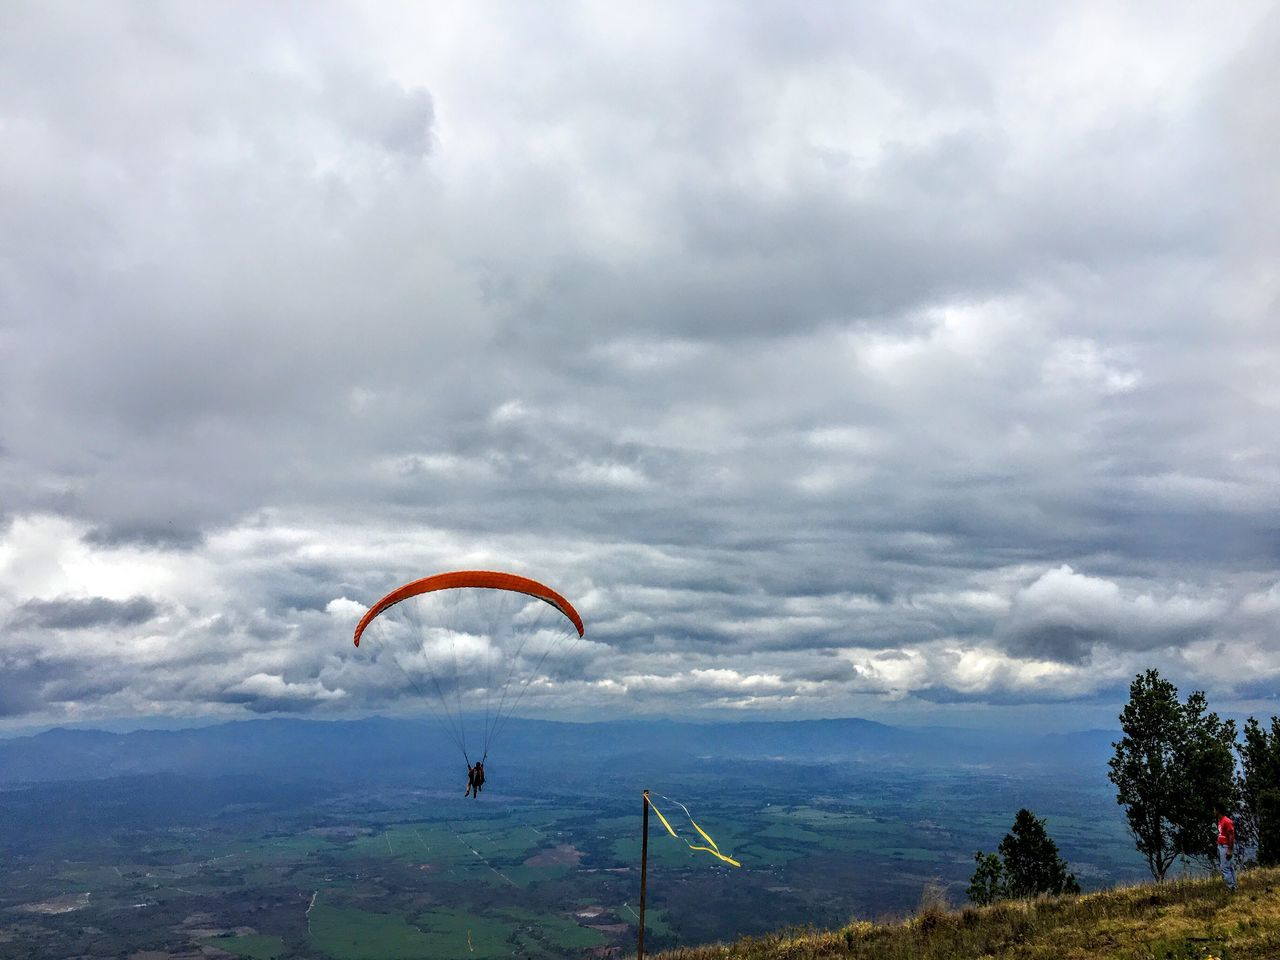 Adventure Extreme Sports Parachute Sky Paragliding Cloud - Sky Leisure Activity Real People Freedom Gliding Nature Lifestyles Landscape Day Mountain Scenics Sport One Person Flying Outdoors Honduras